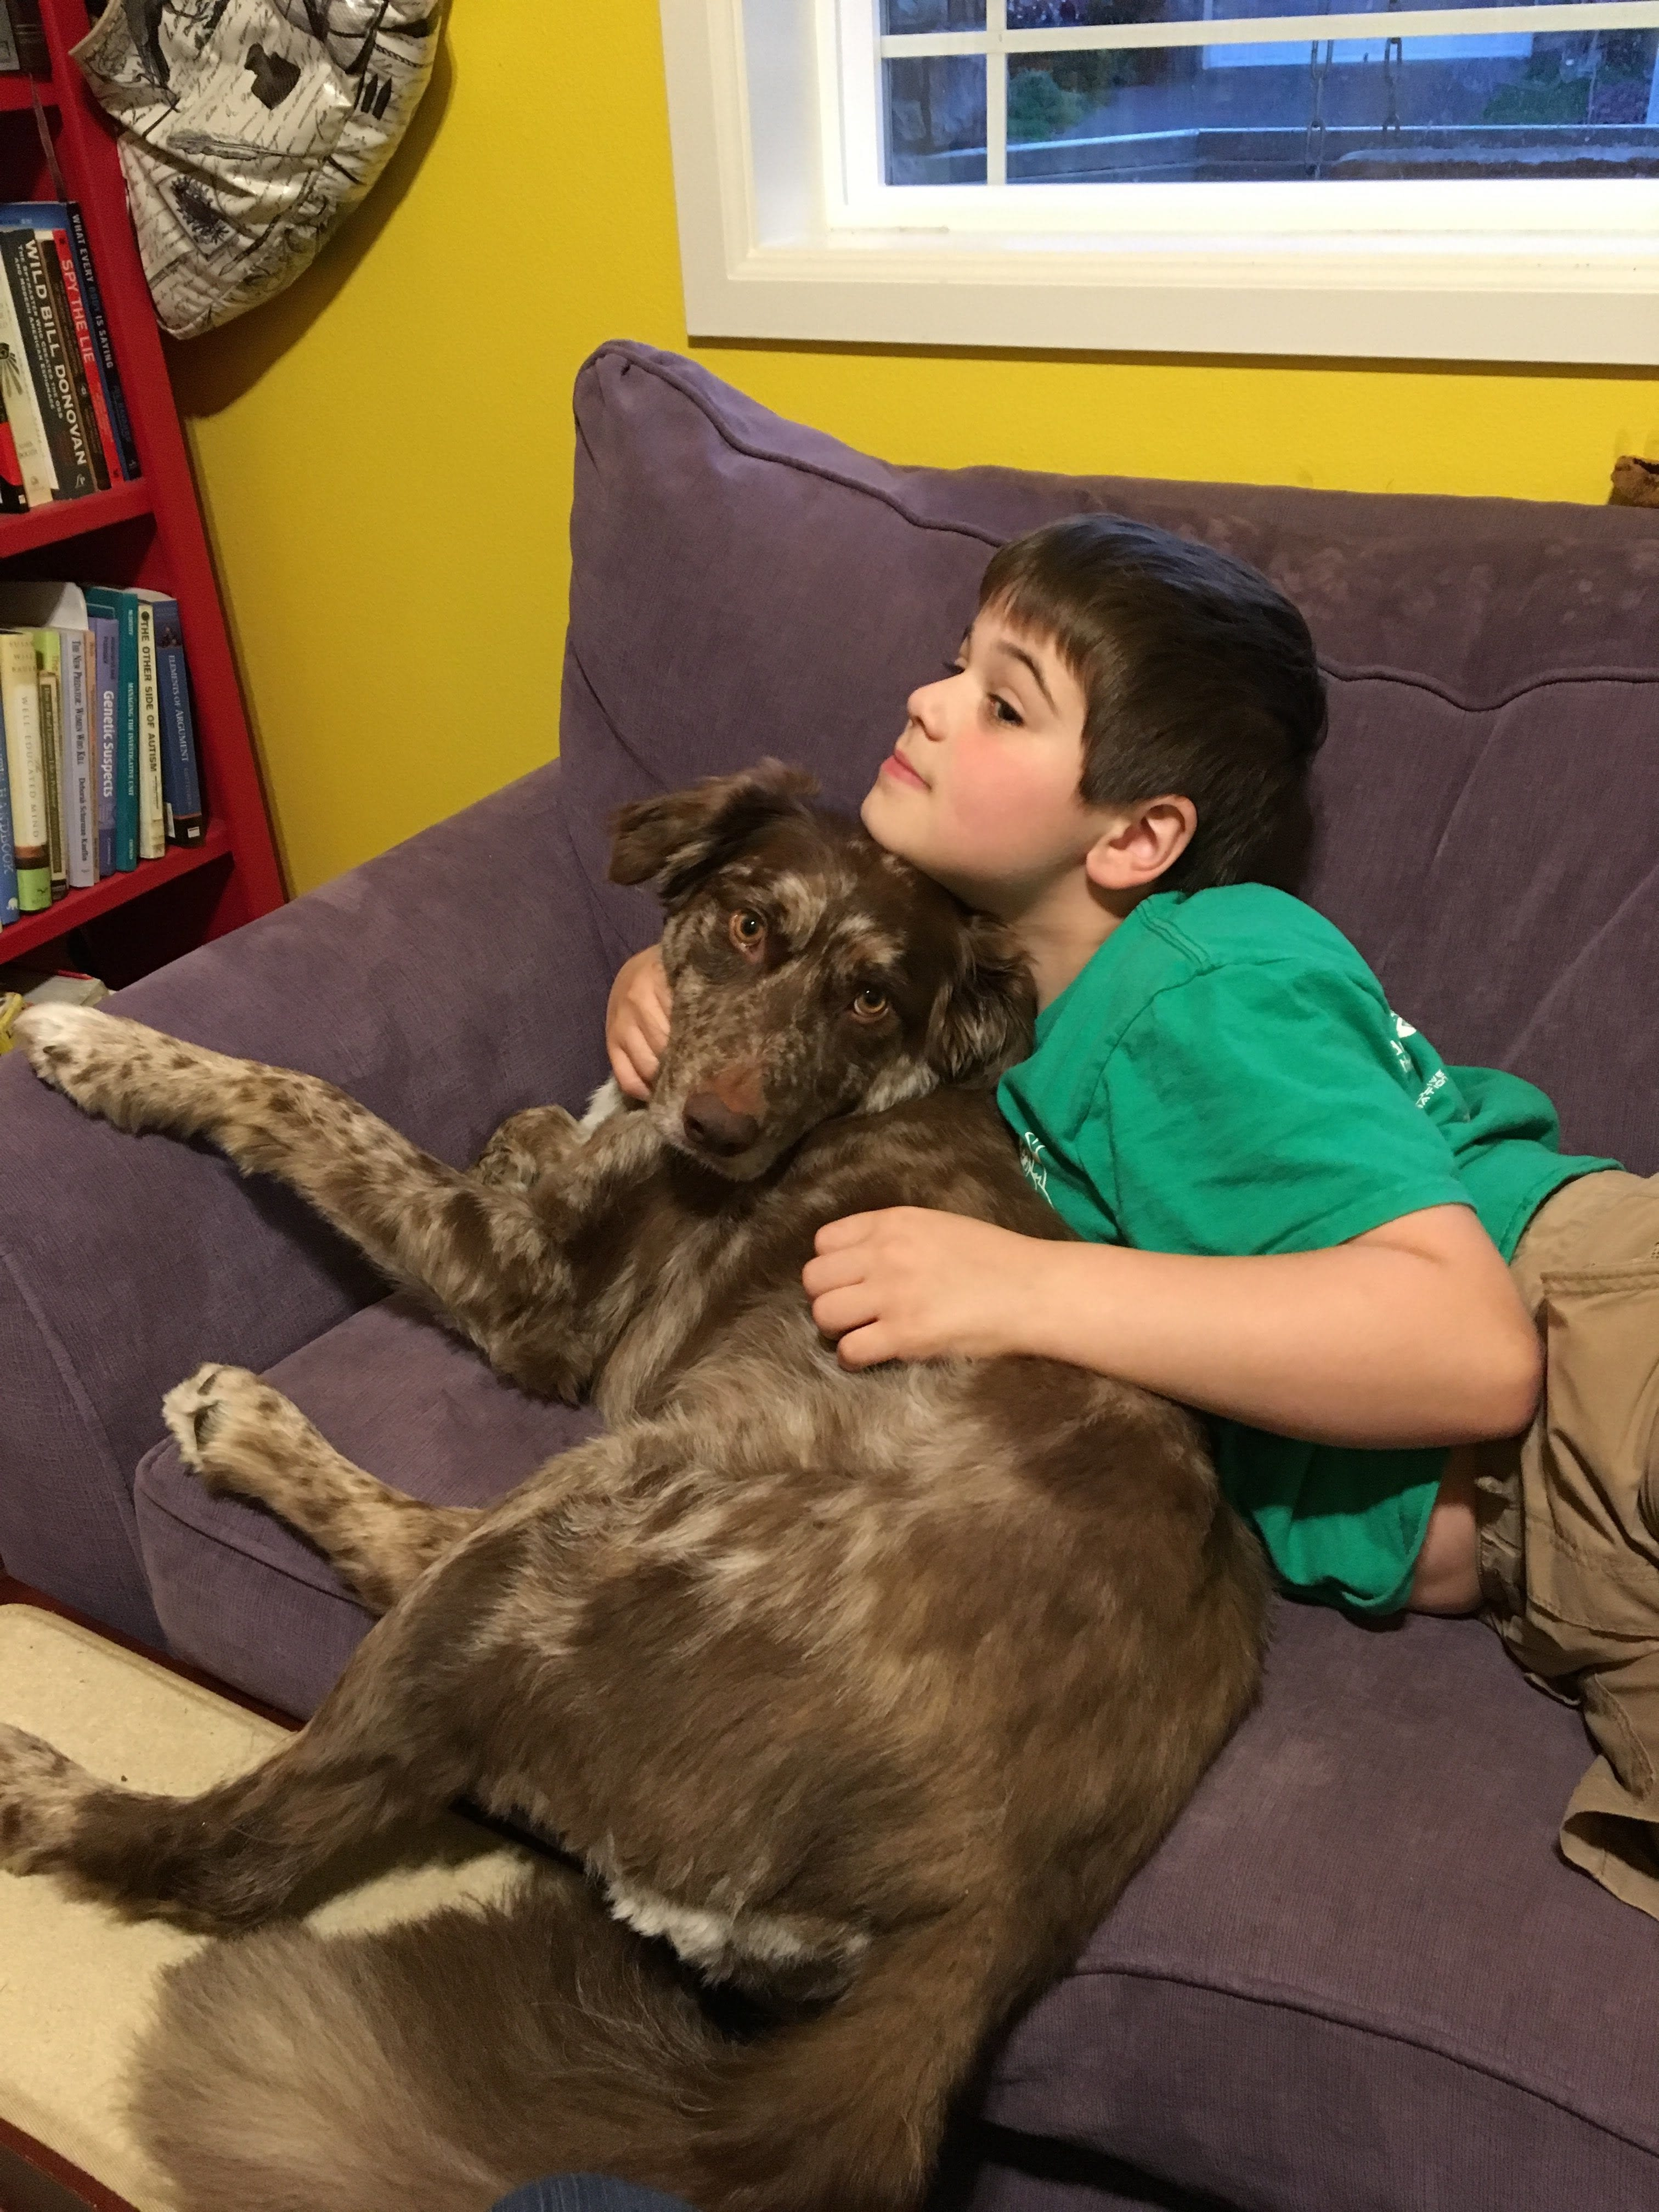 Image of a young boy laying on a brown dog on a couch.